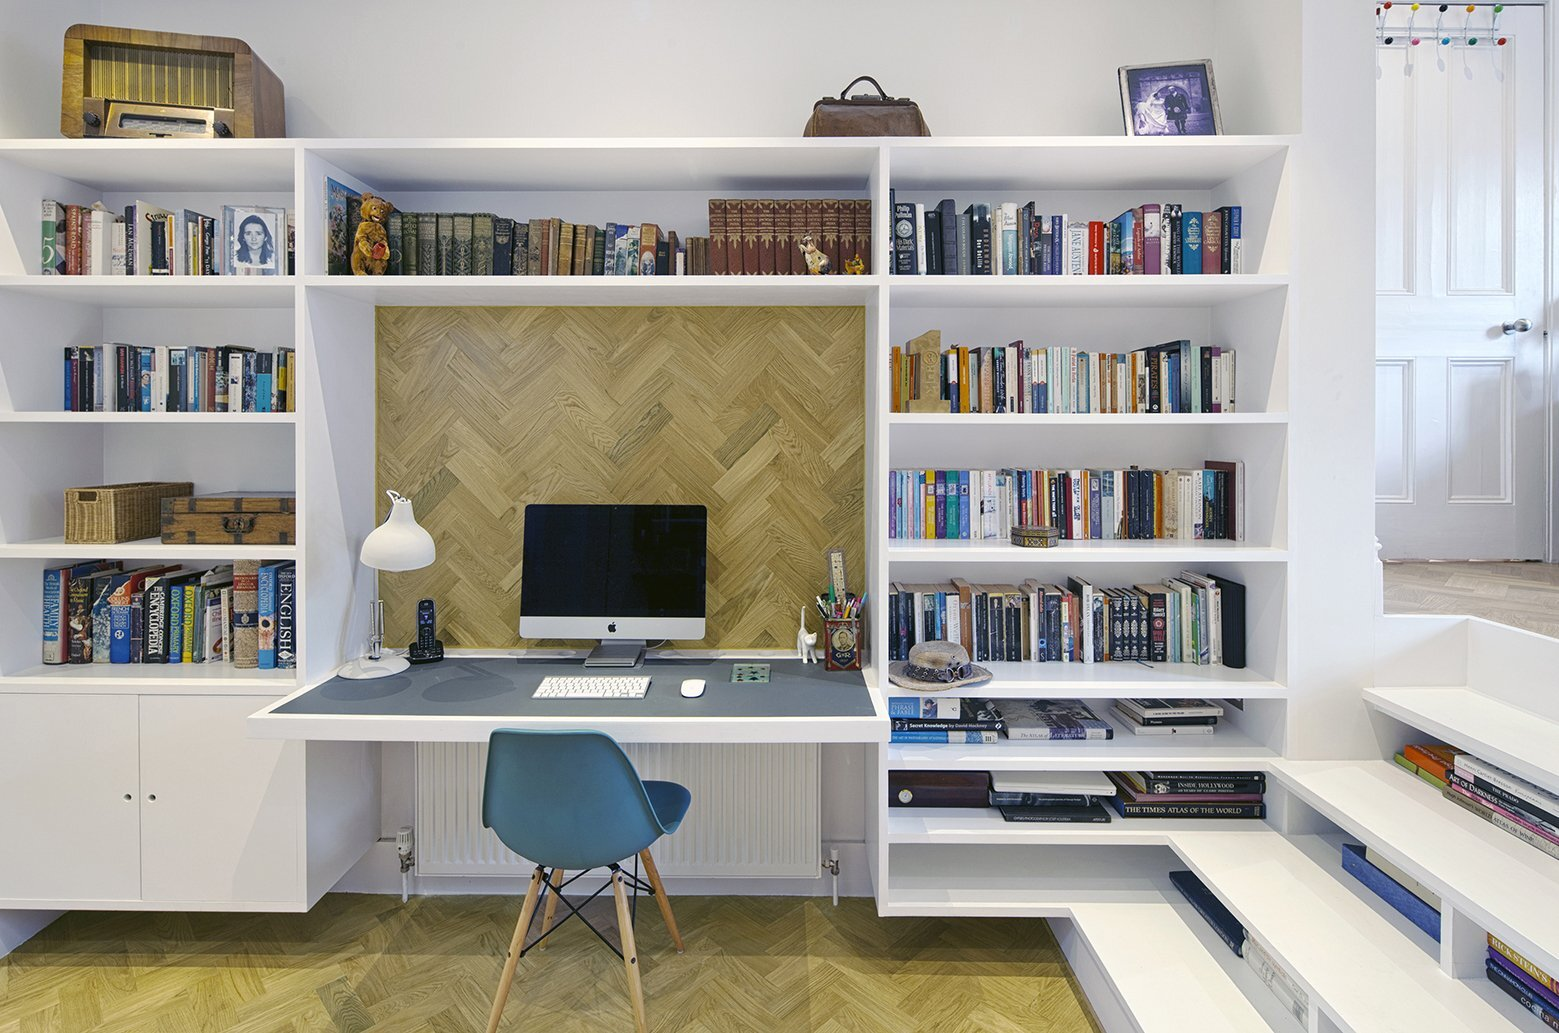 Small House - Zminkowska de Boise Architects - London - Work Station - Humble Homes